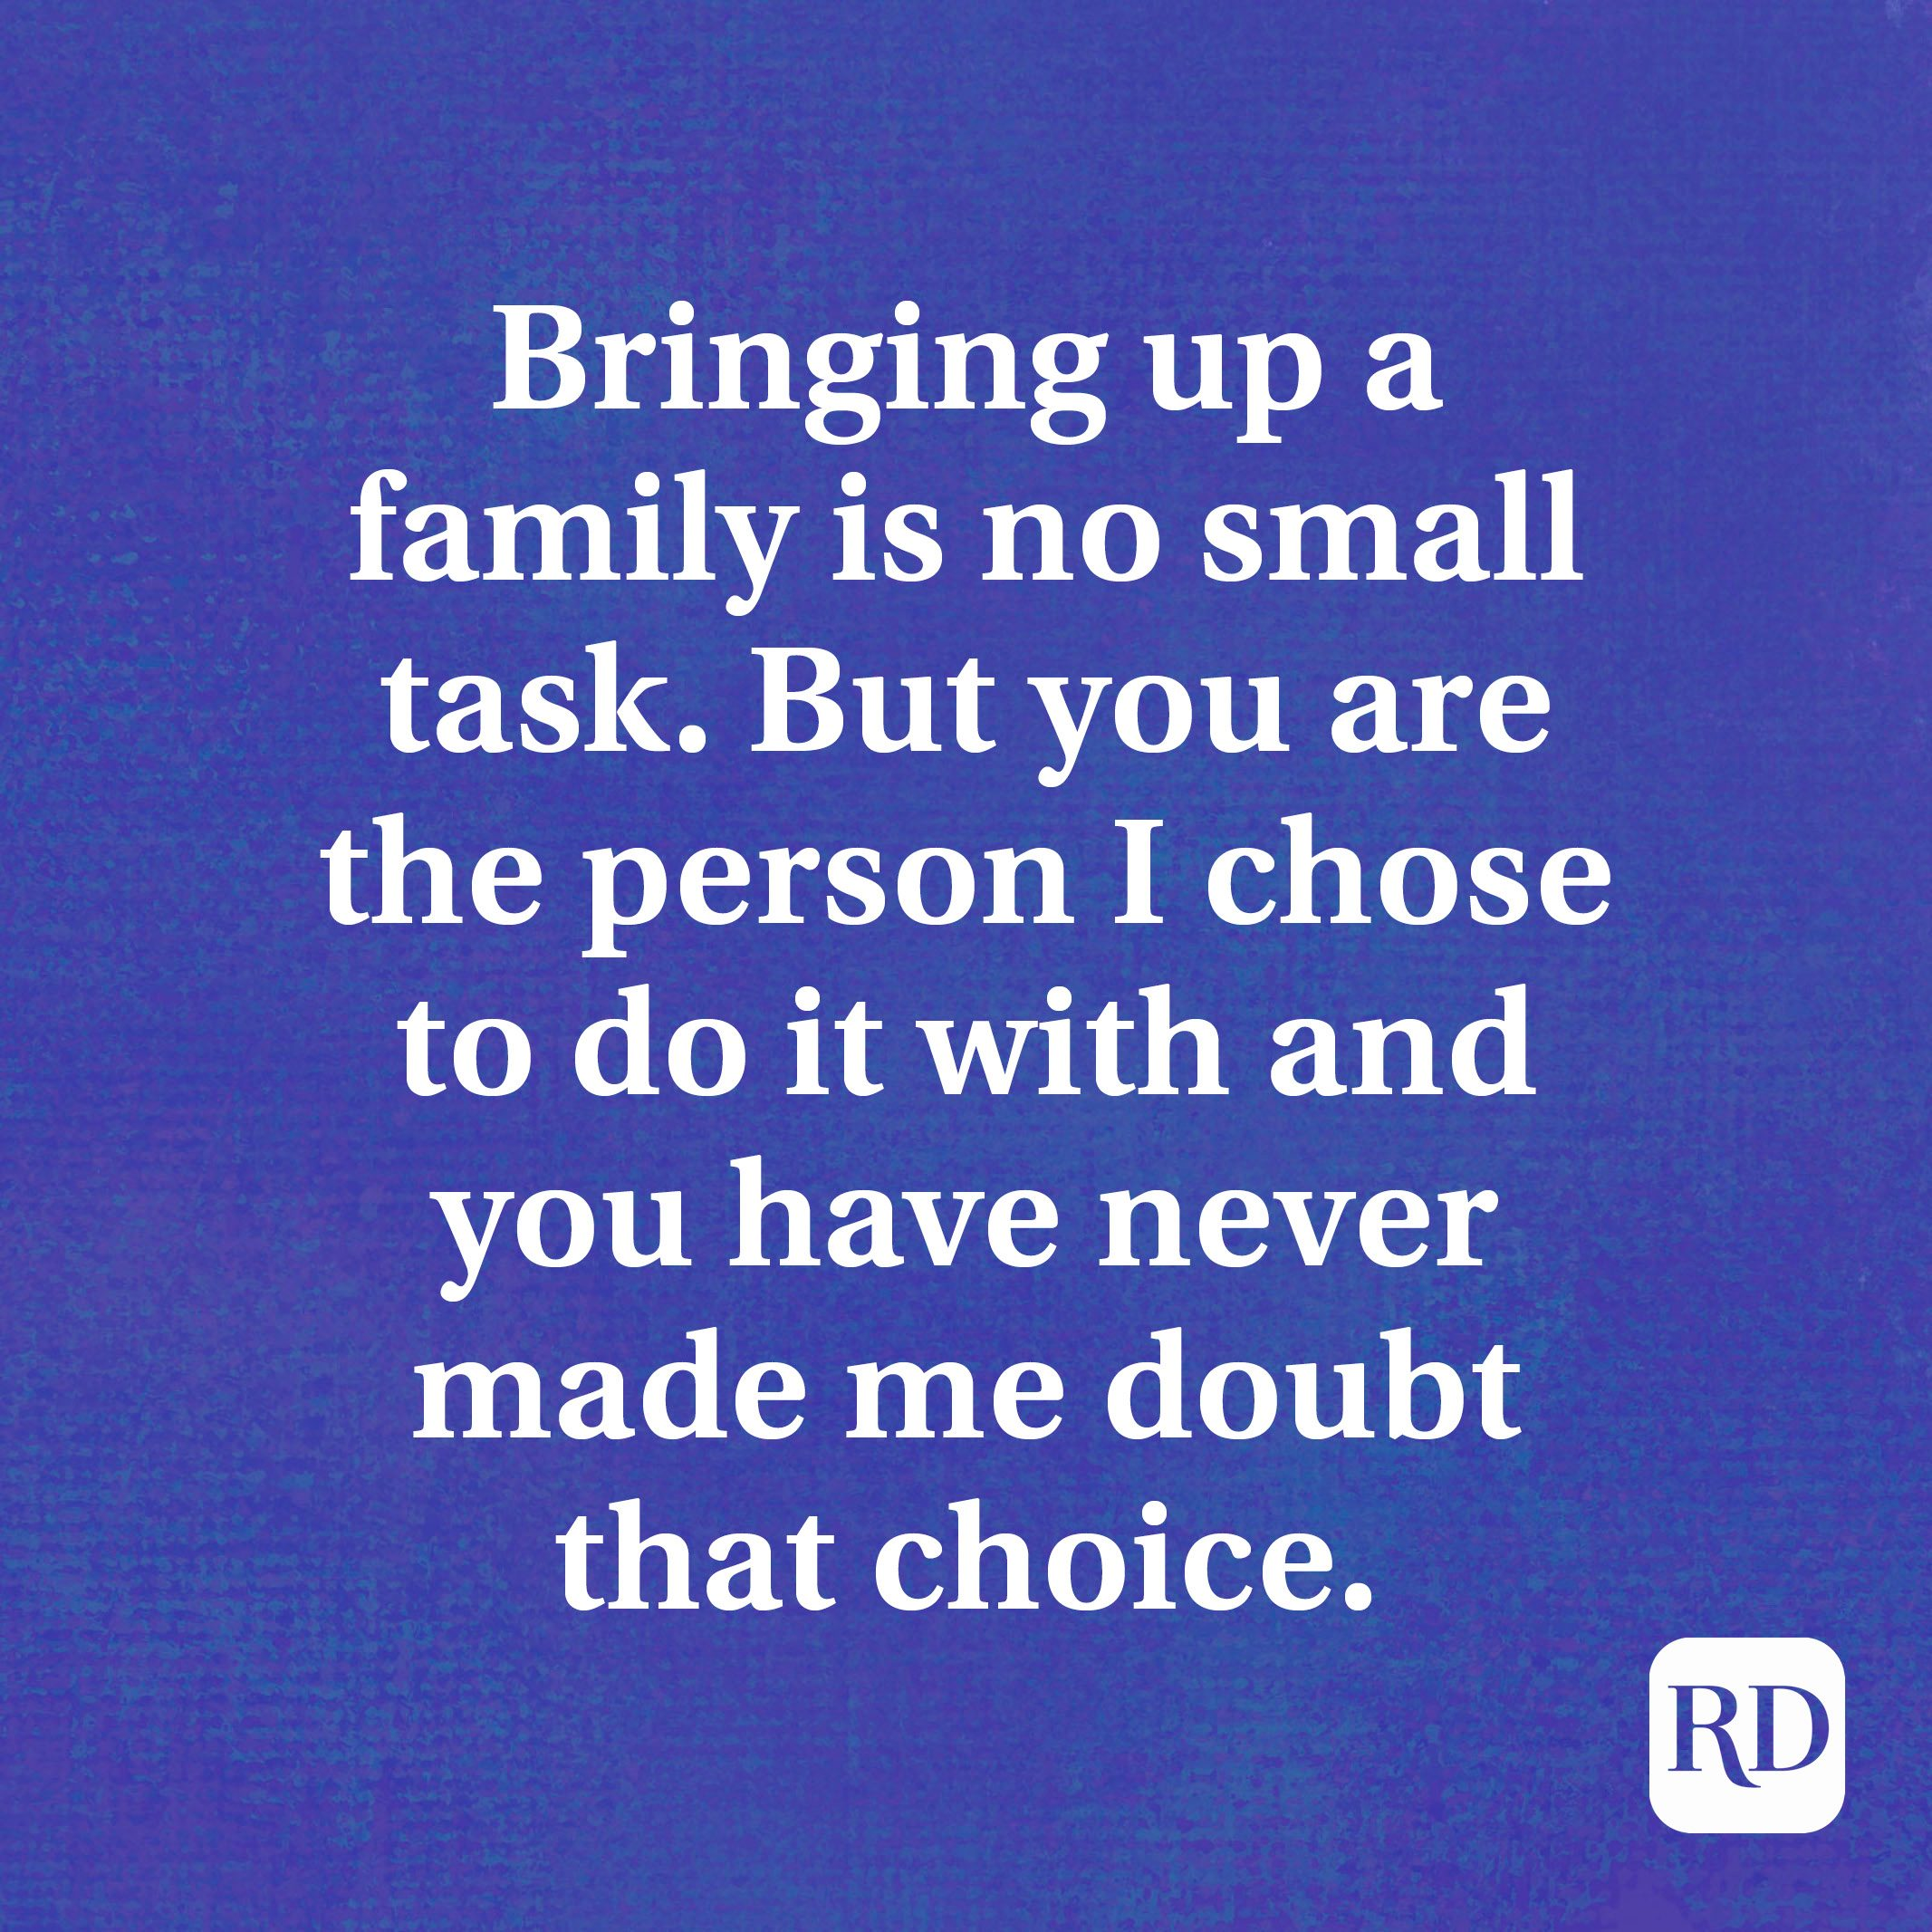 Bringing up a family is no small task. But you are the person I chose to do it with and you have never made me doubt that choice.